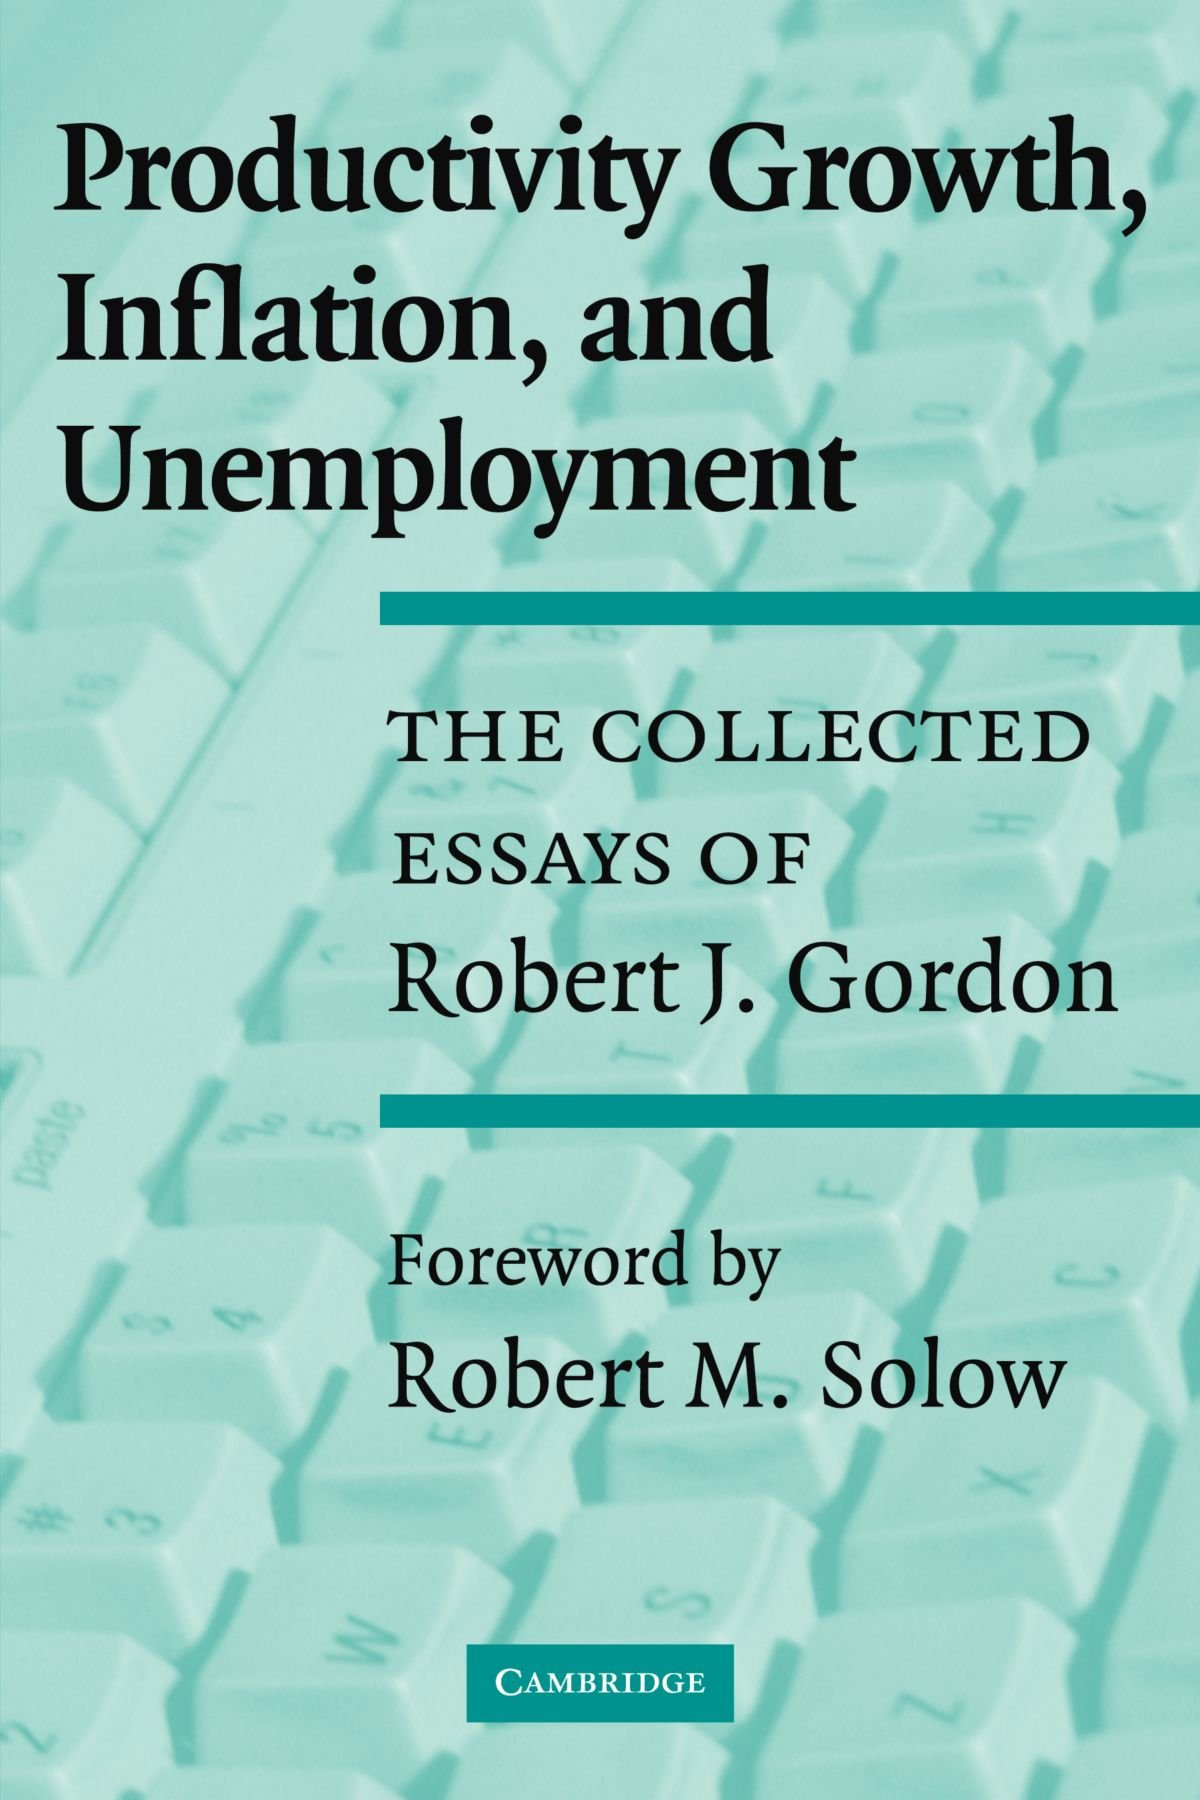 Download Productivity Growth, Inflation, and Unemployment: The Collected Essays of Robert J. Gordon pdf epub